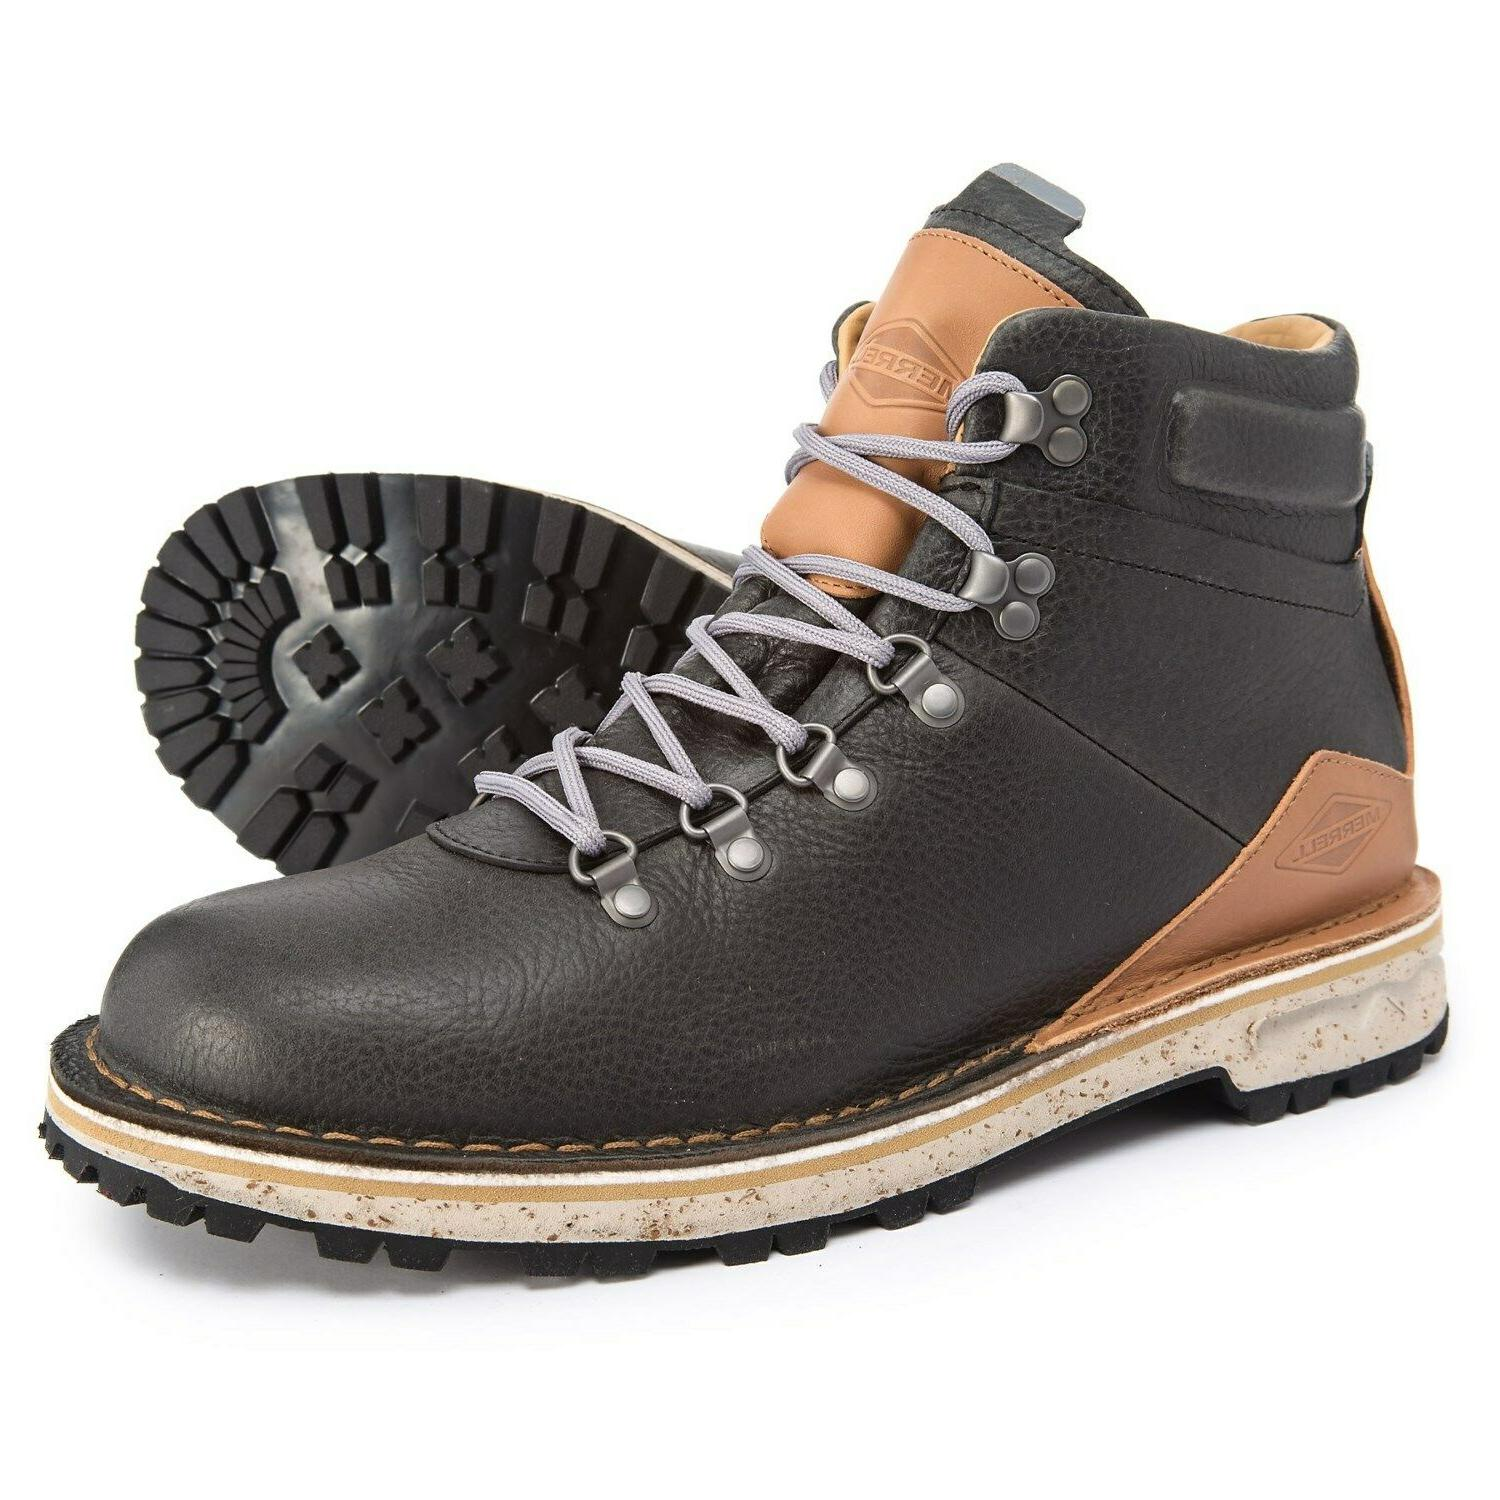 9e69d170ebf New Men`s Merrell Sugarbush Boots Leather Waterproof